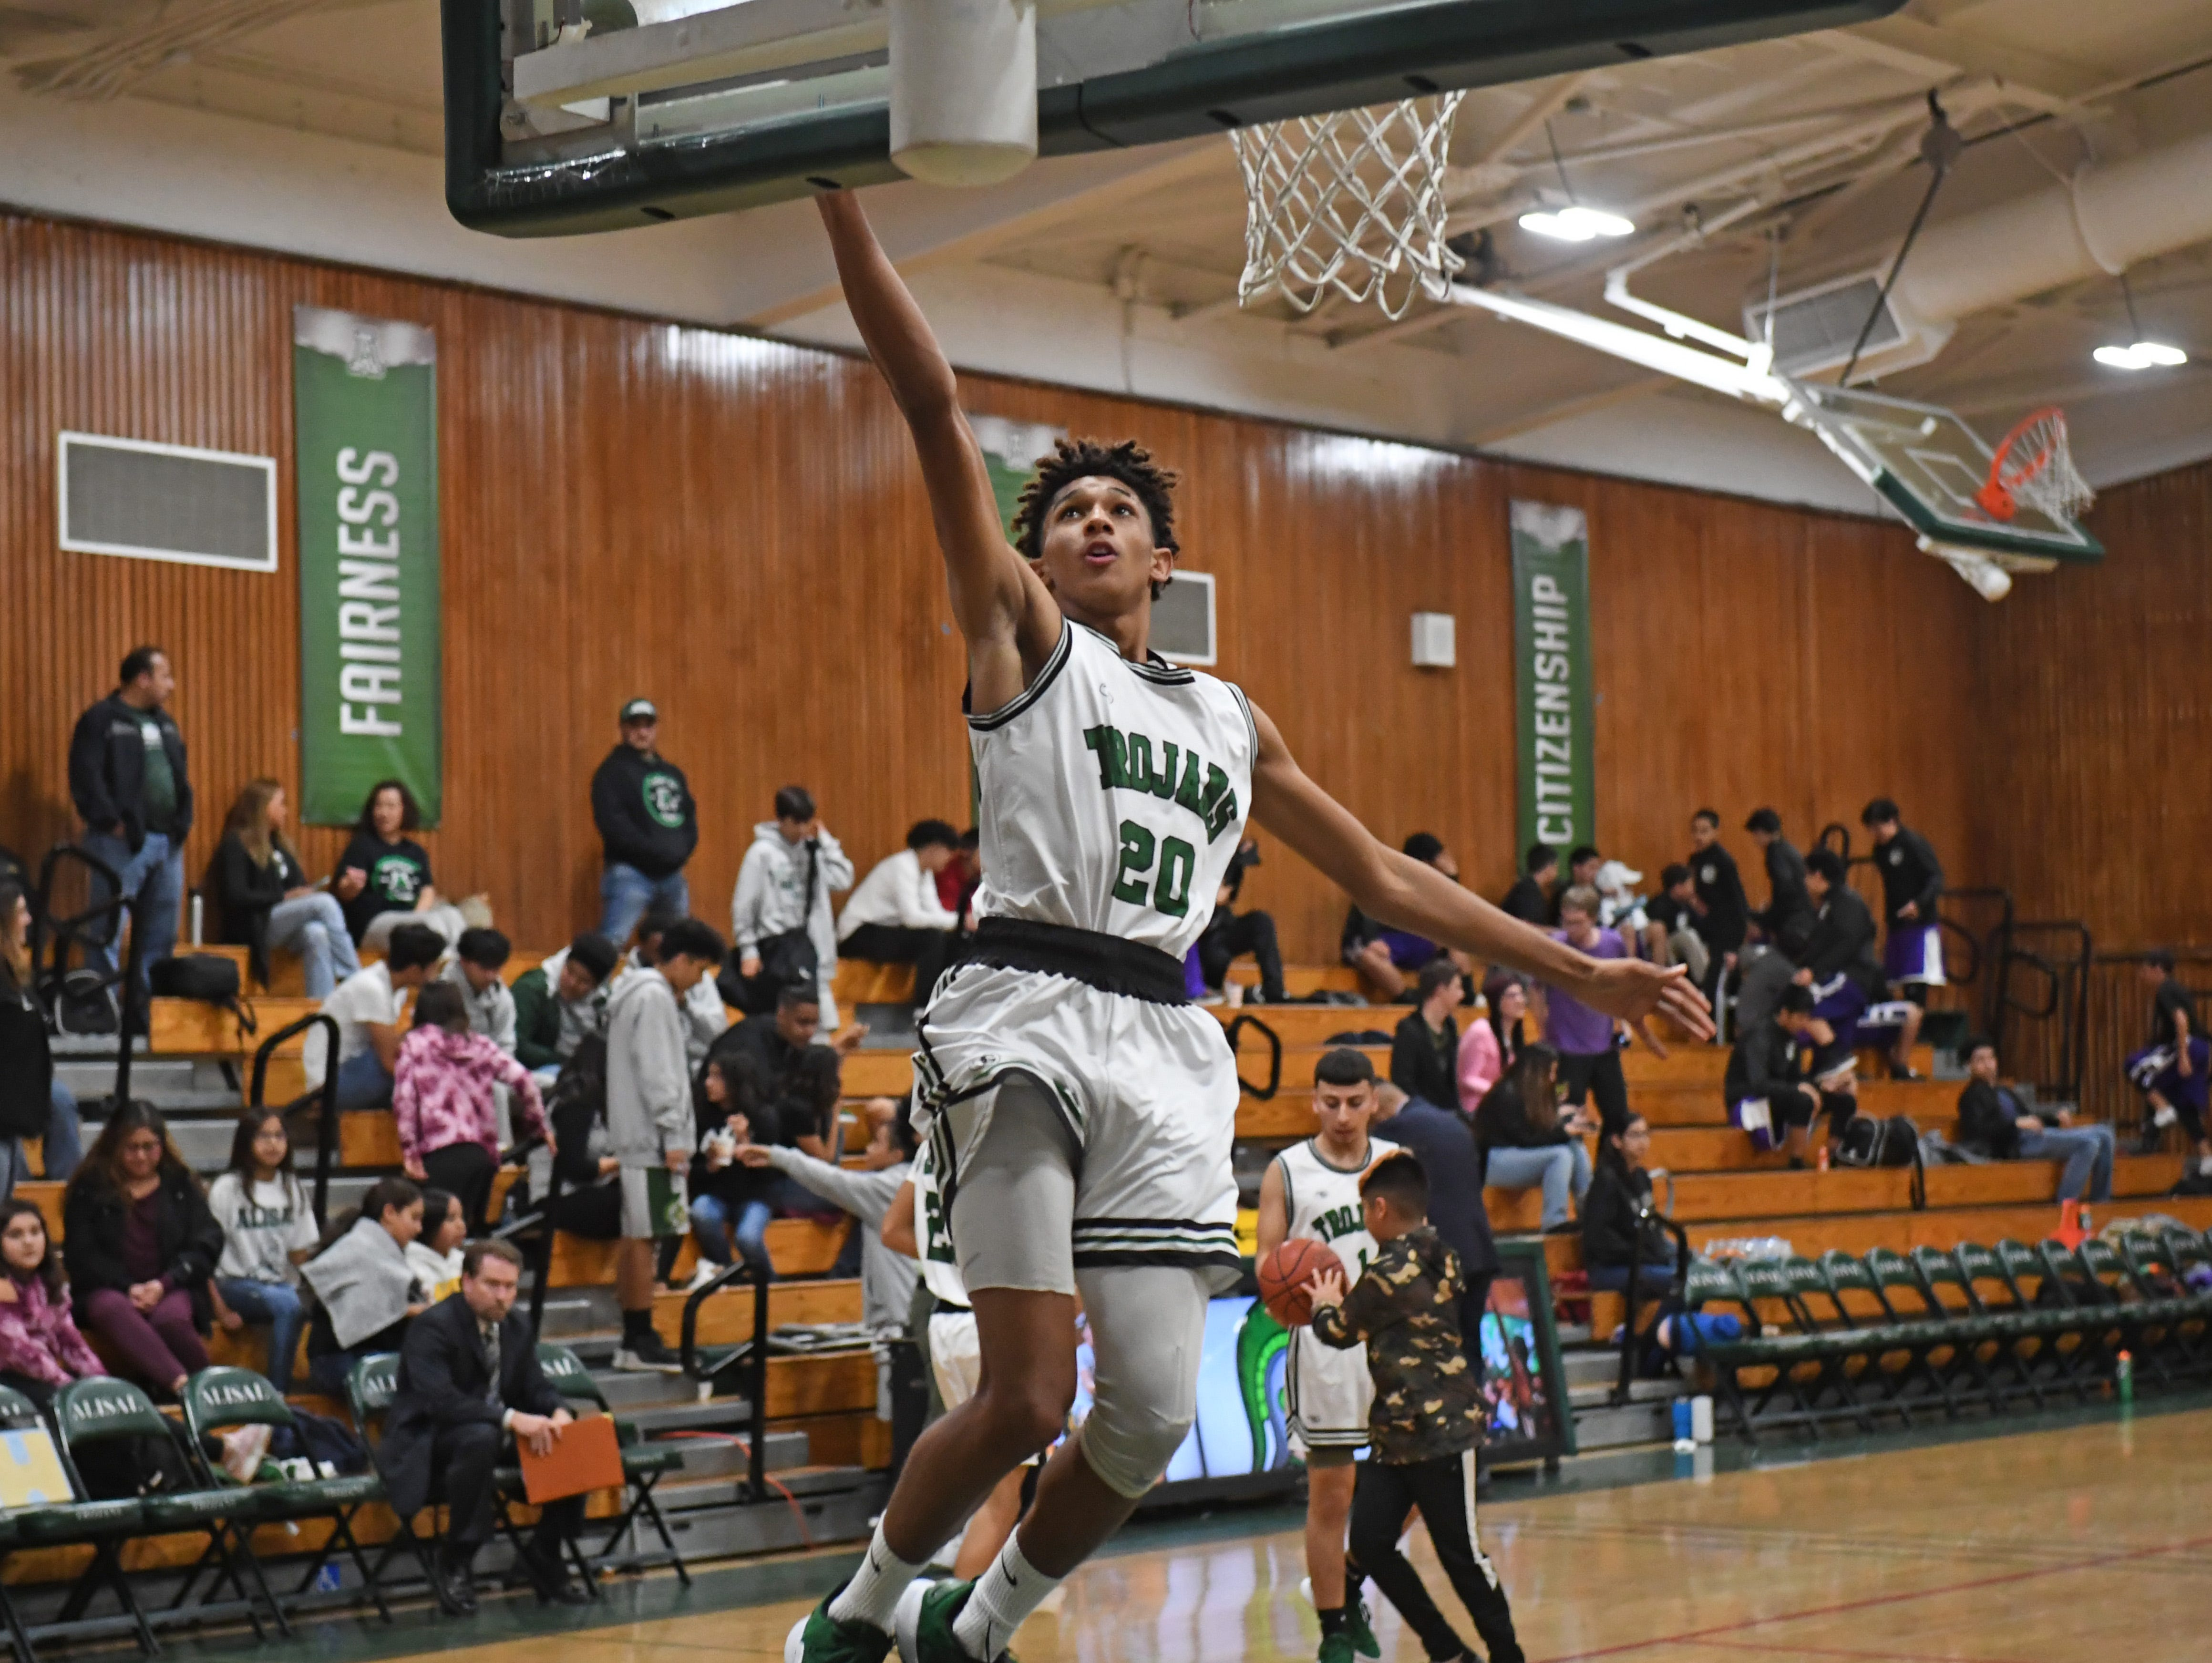 Alisal guard Izahias Carrillo (20) puts up a layup during halftime.